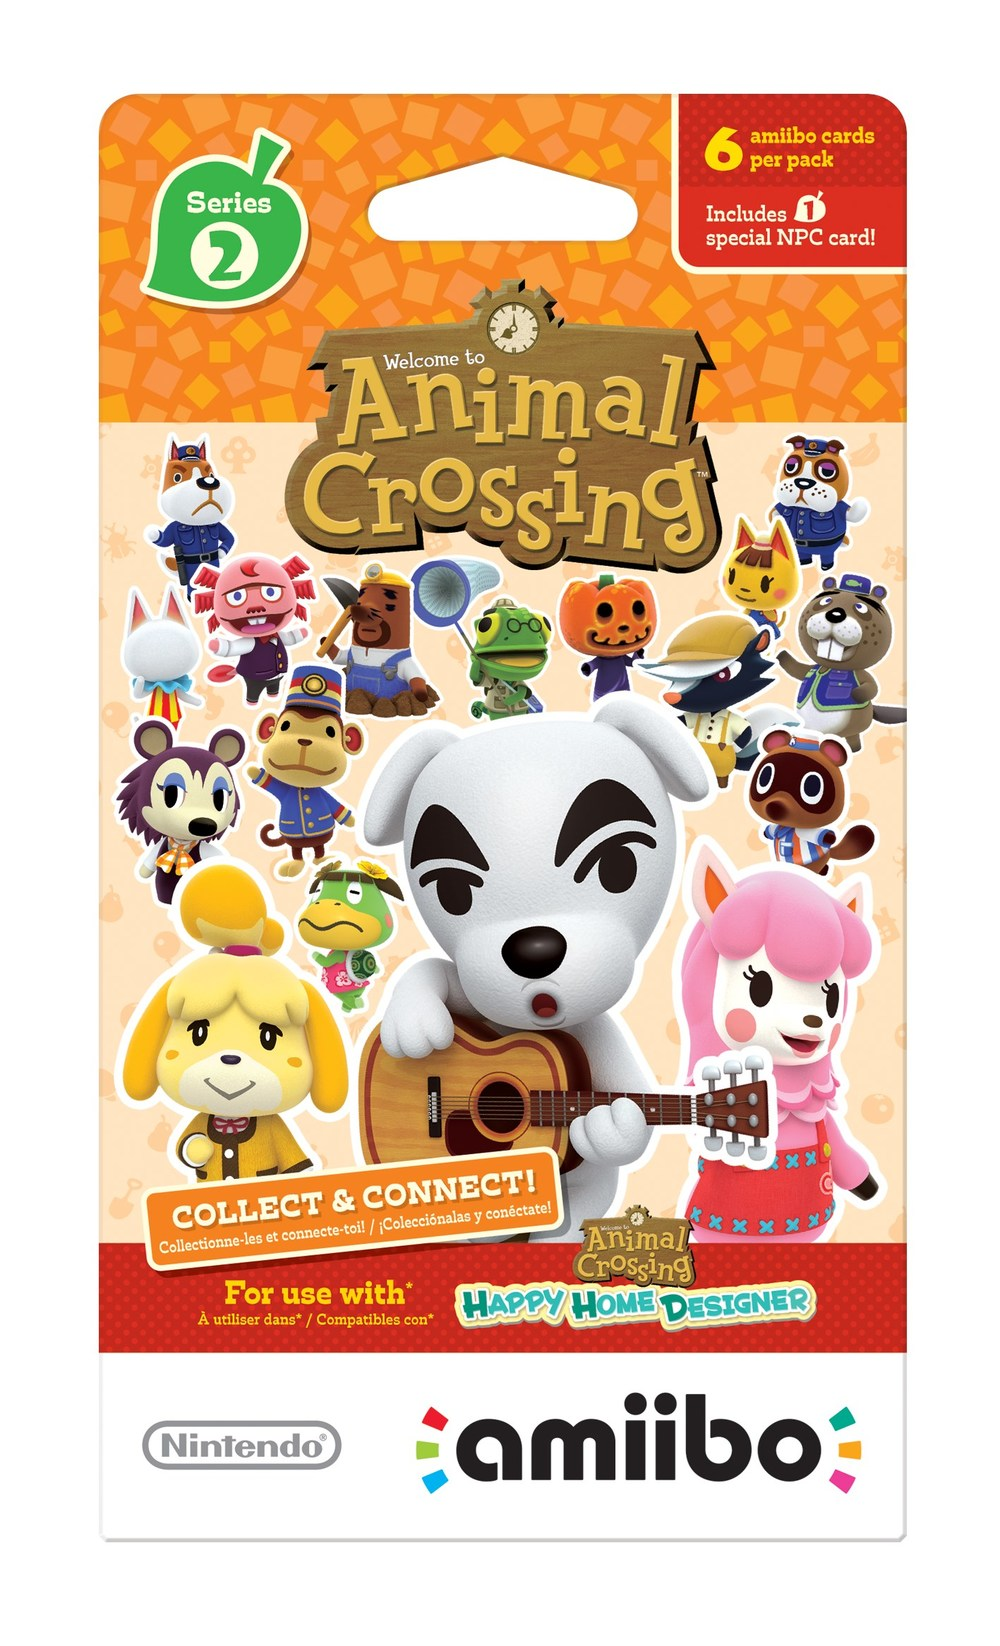 amiibo-cards_AnimalCrossing_Series2_pkg_png_jpgcopy.jpg